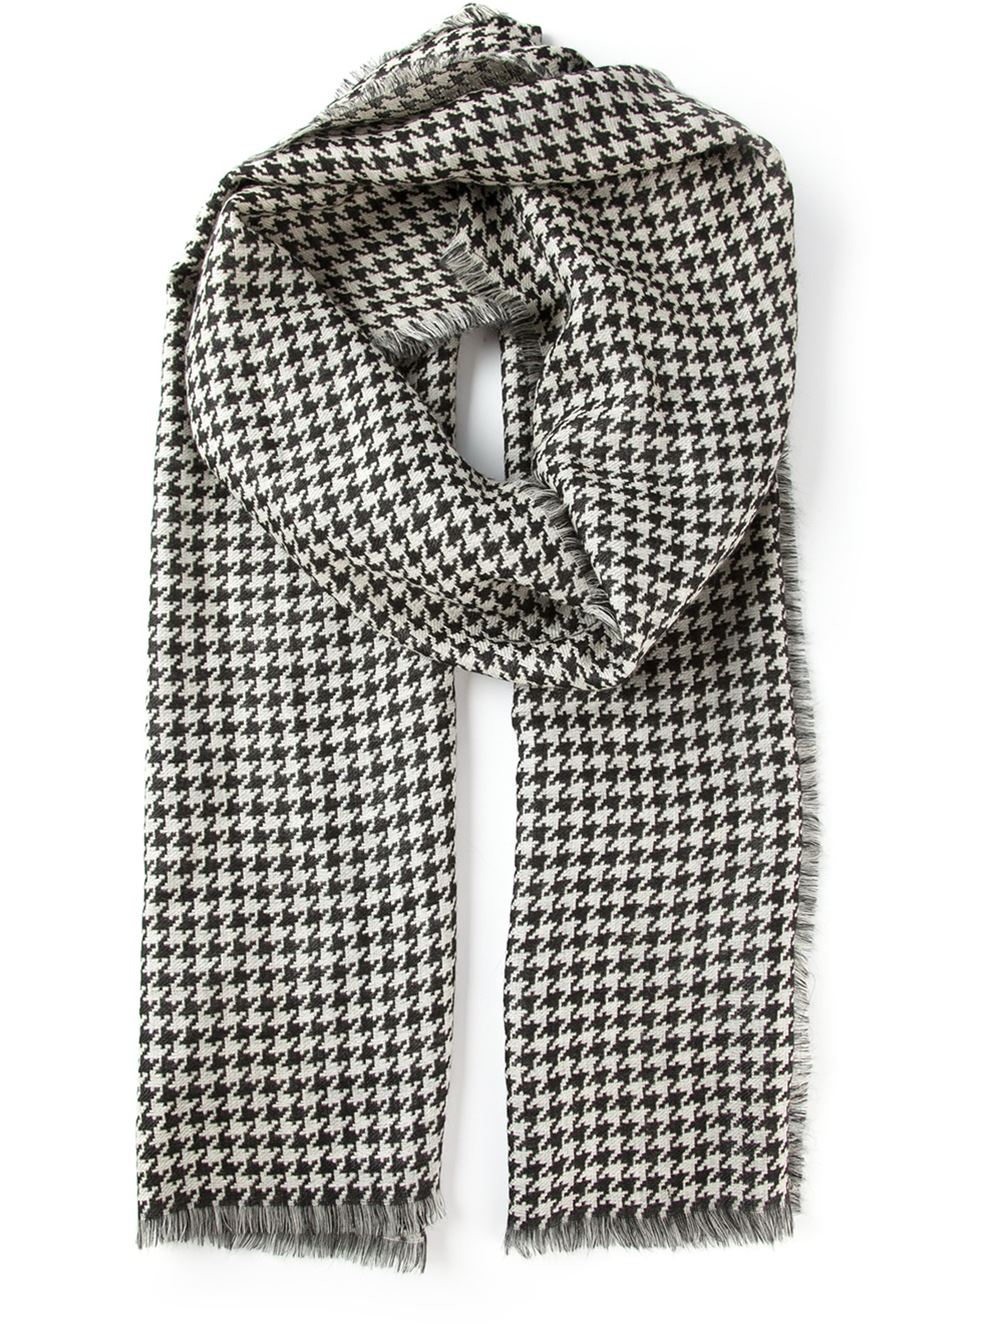 Knitting Pattern For Houndstooth Scarf : Jil sander Houndstooth Scarf in Black for Men Lyst